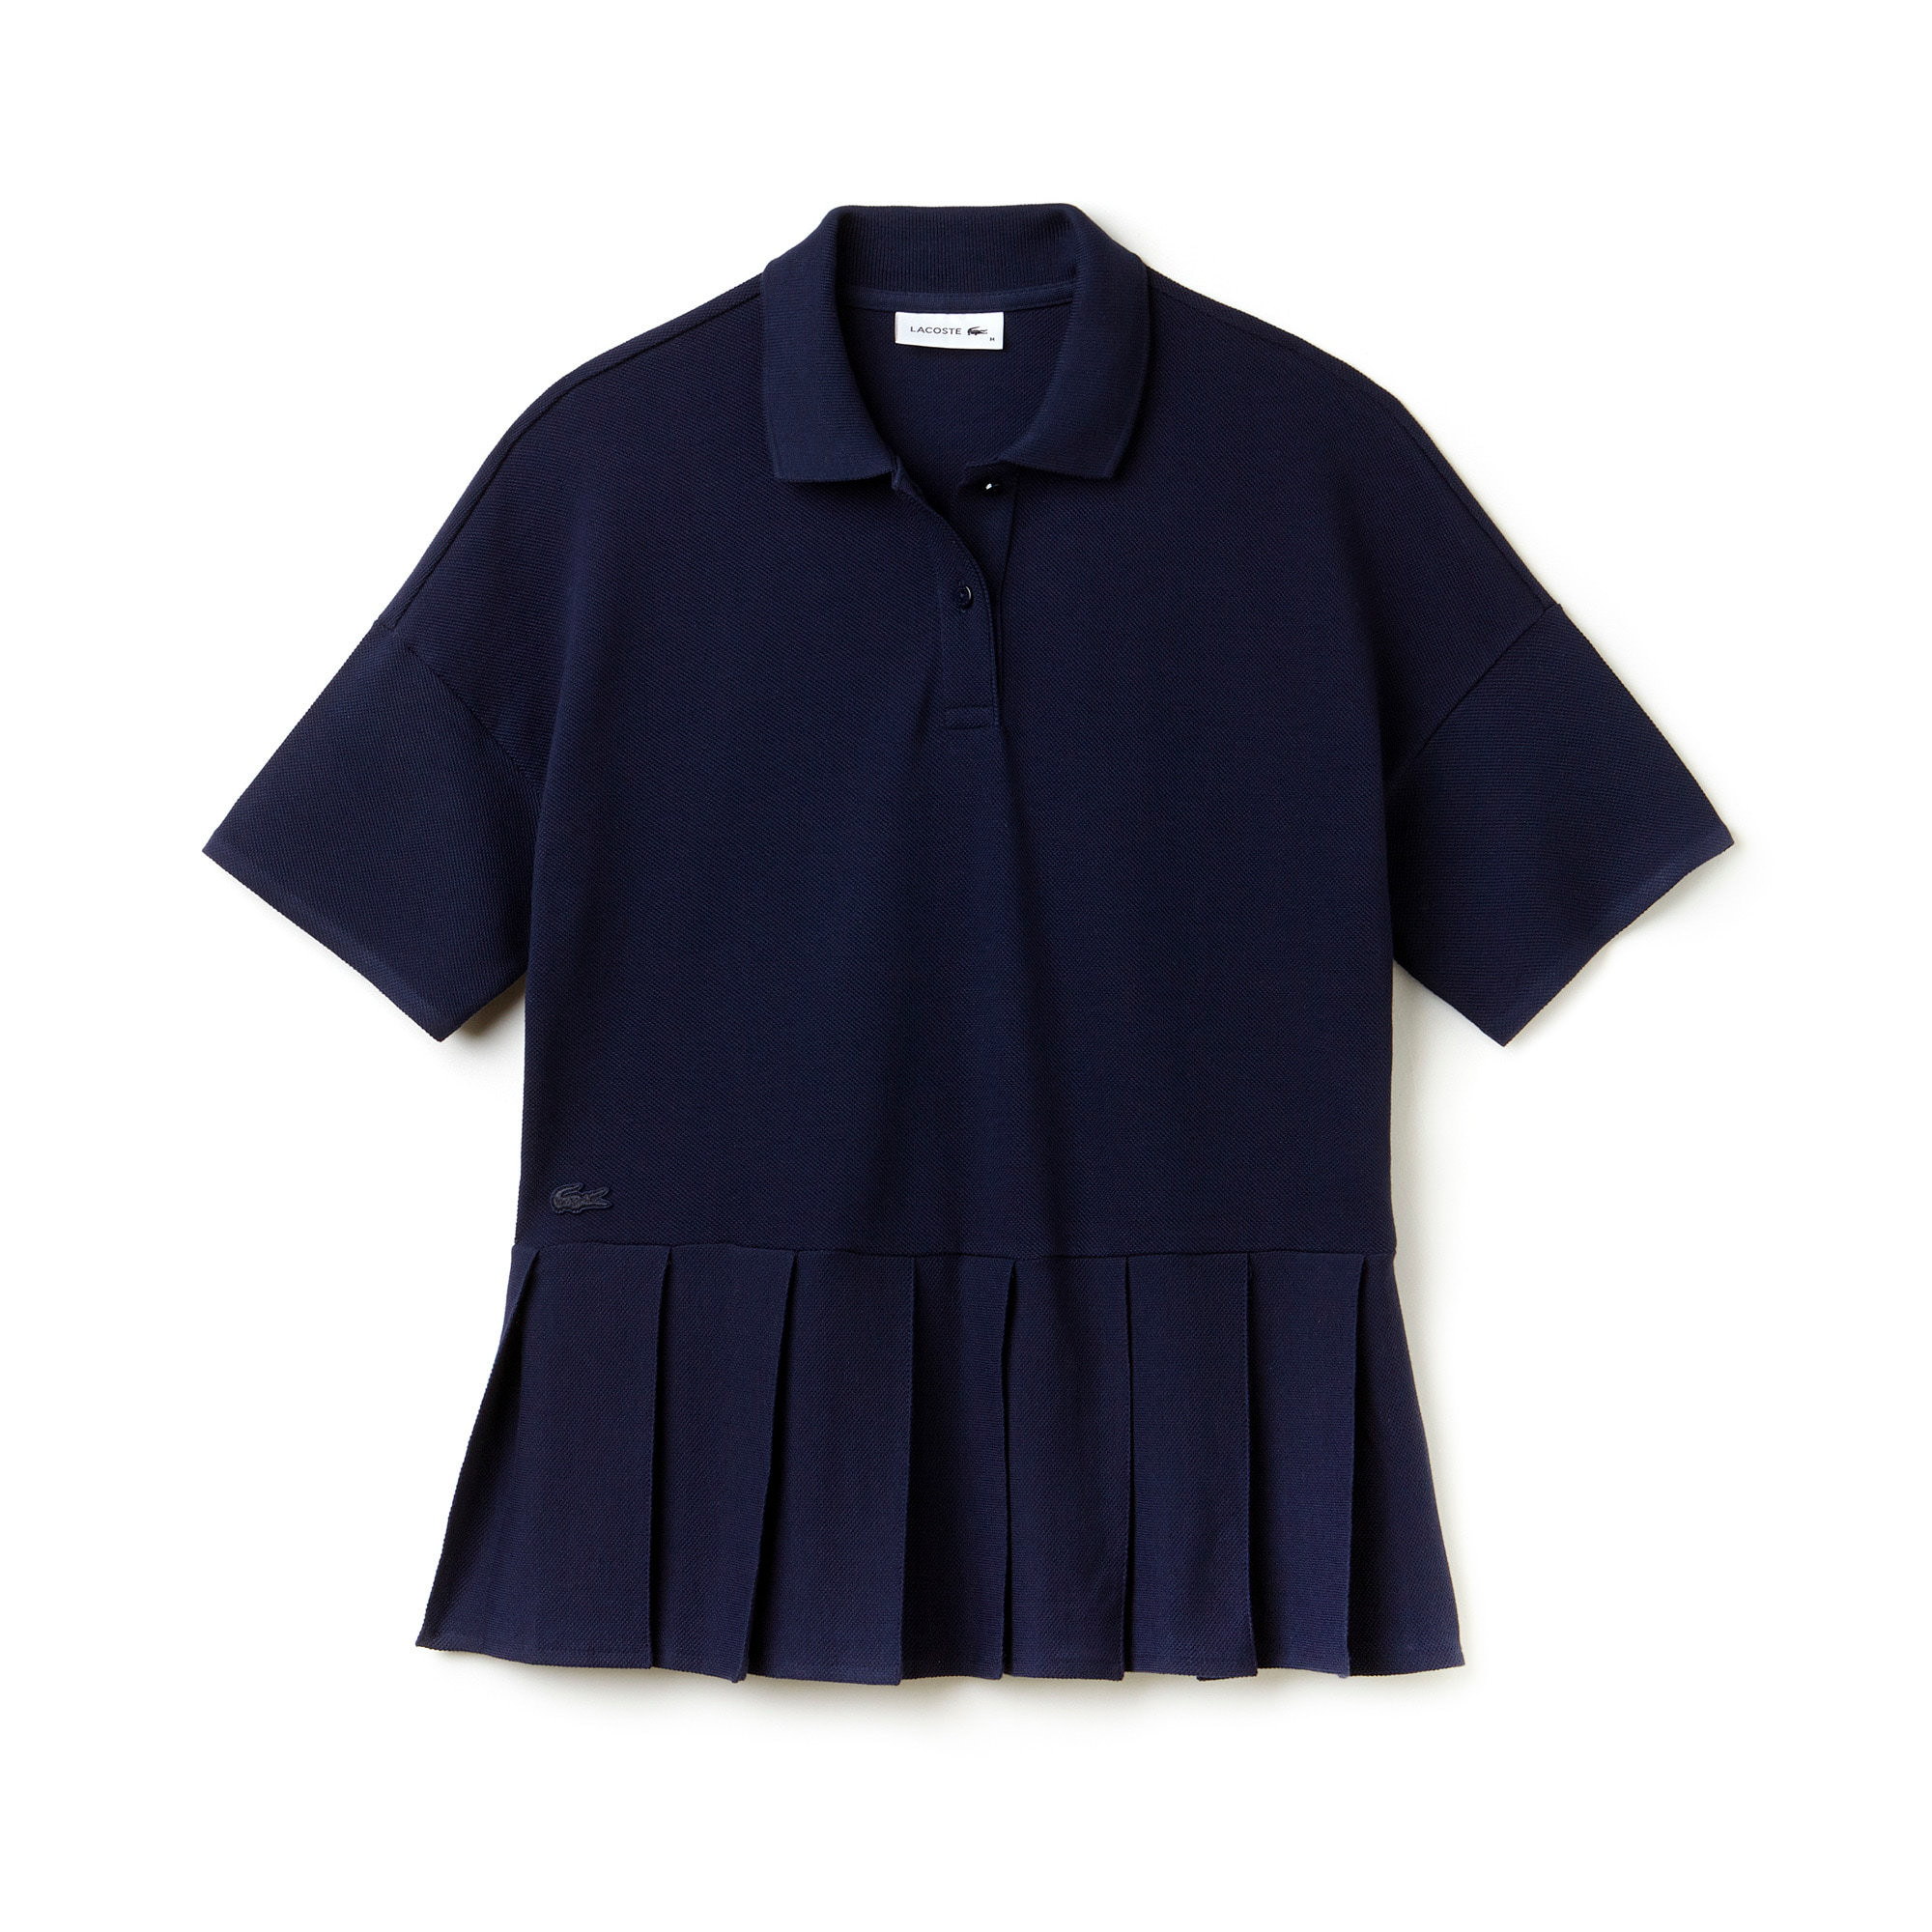 Women's Pleated Thick Cotton Piqué Polo